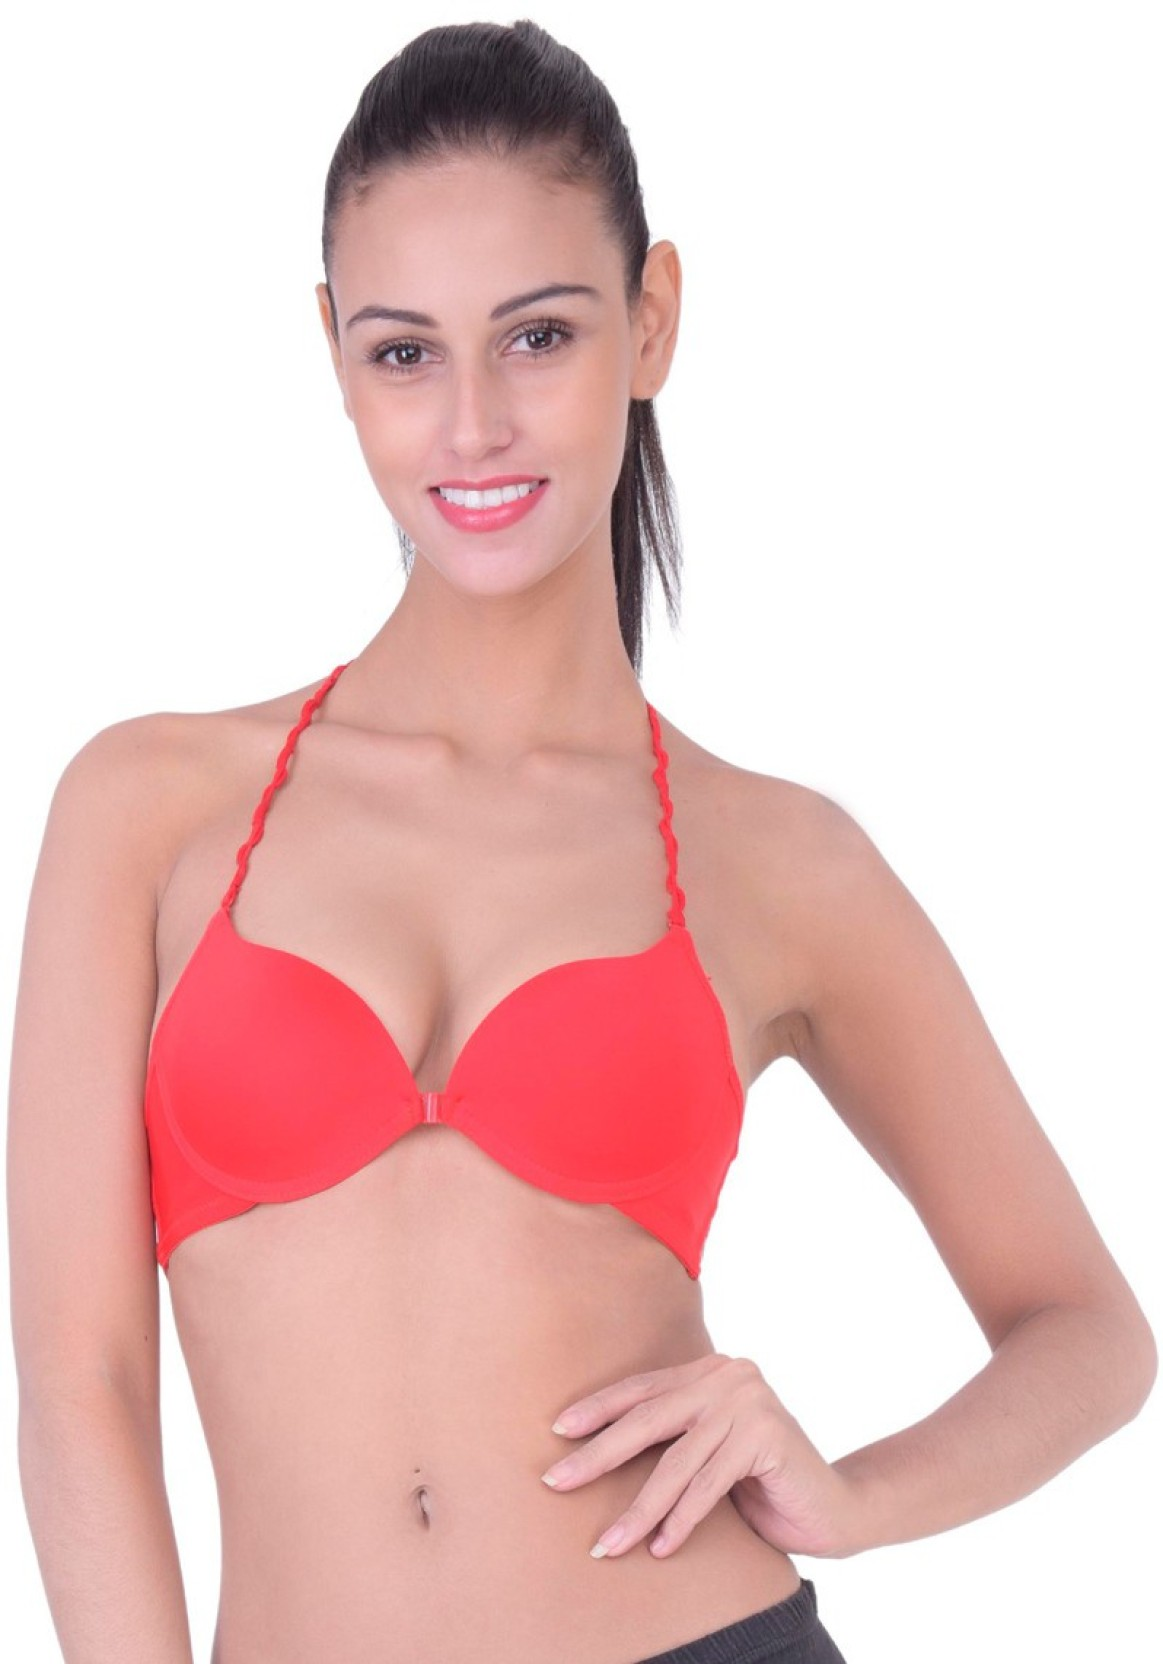 7e6bd2ded6 PrivateLifes Women s Push-up Lightly Padded Bra - Buy Red ...